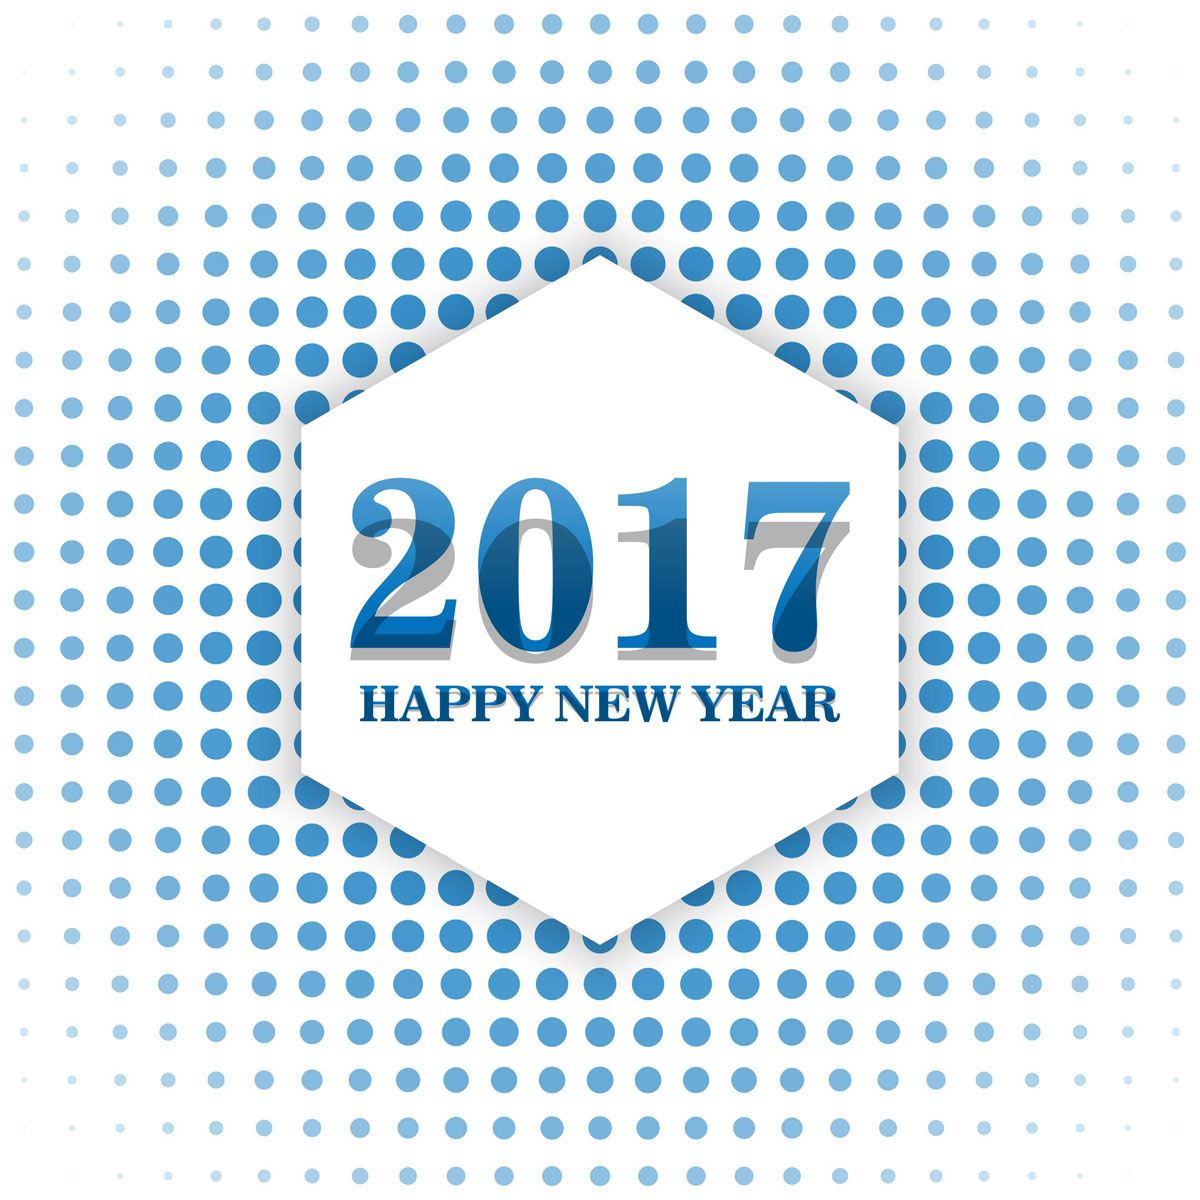 Happy New Year 2017 | Happy New Year 2017 | Pinterest | Message quotes